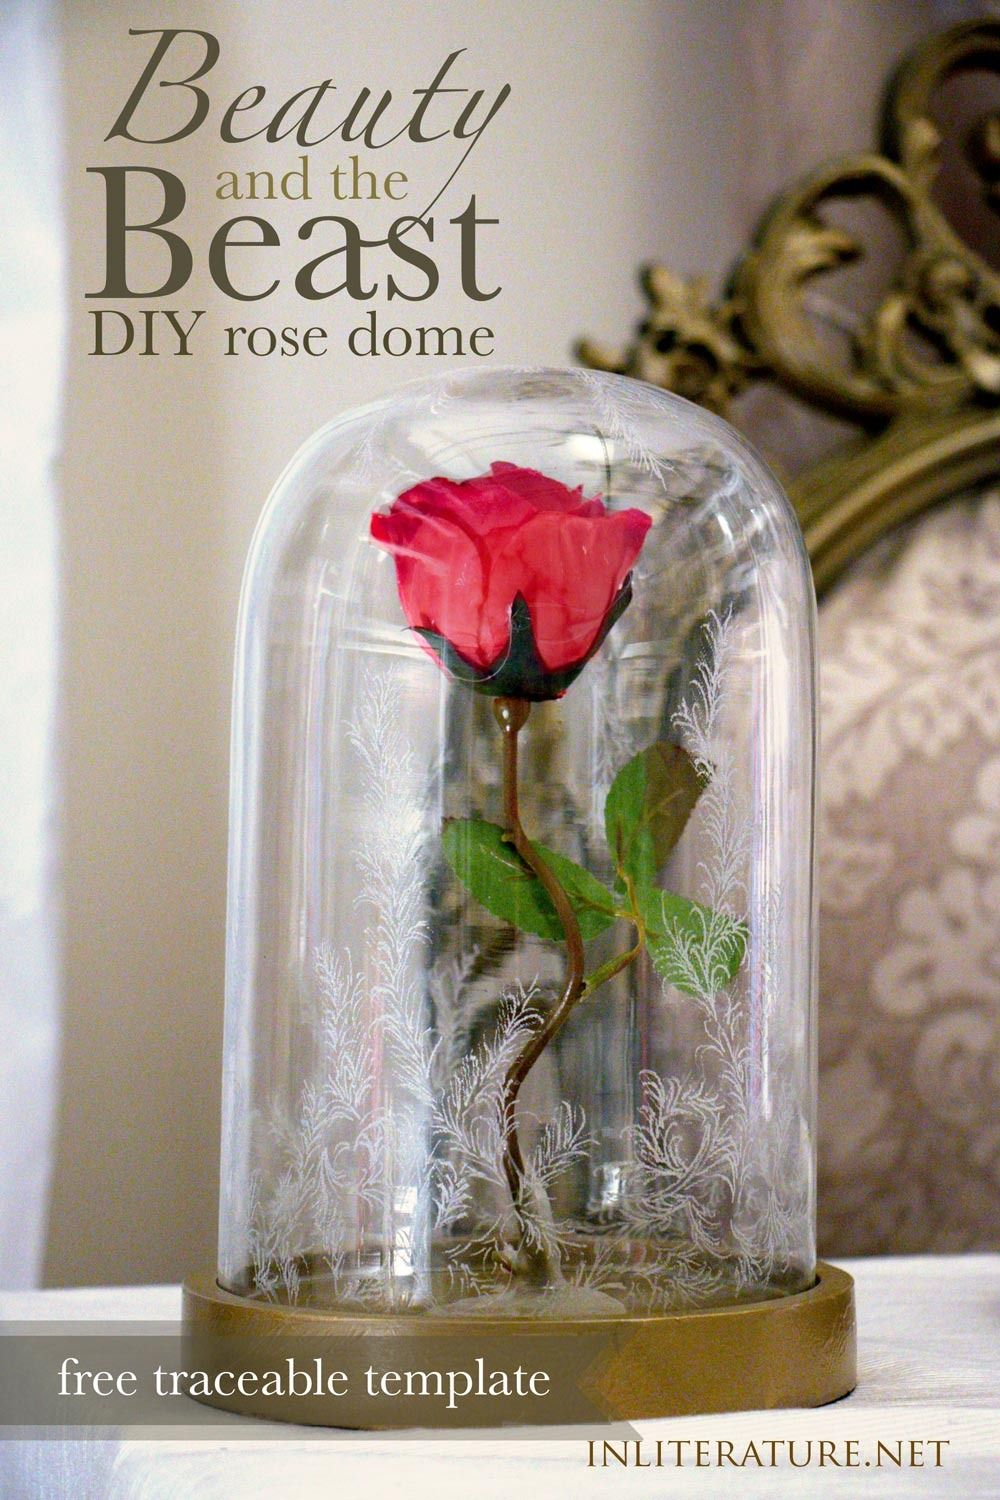 beauty and the beast rose dome tutorial diy pinterest. Black Bedroom Furniture Sets. Home Design Ideas